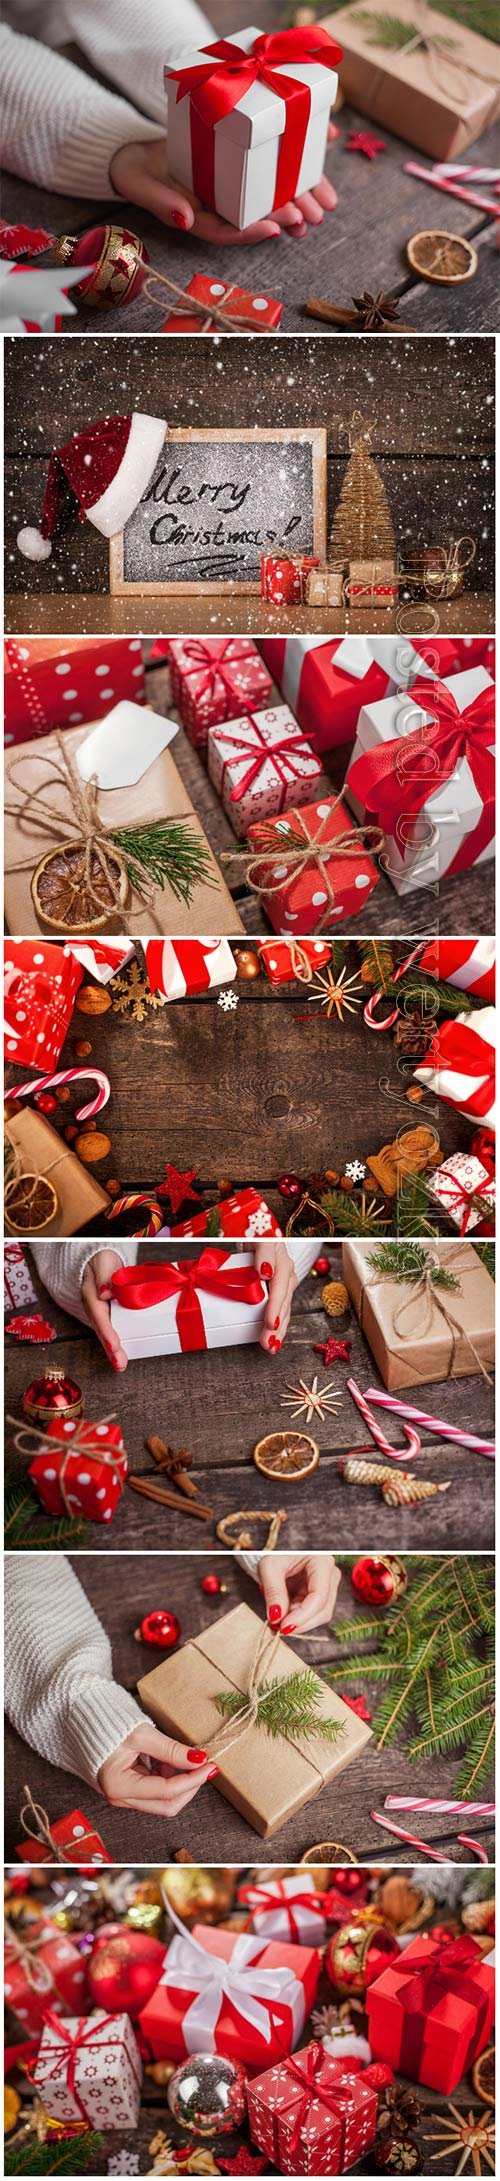 Christmas background with fir branches, candles, gifts and Christmas decorations